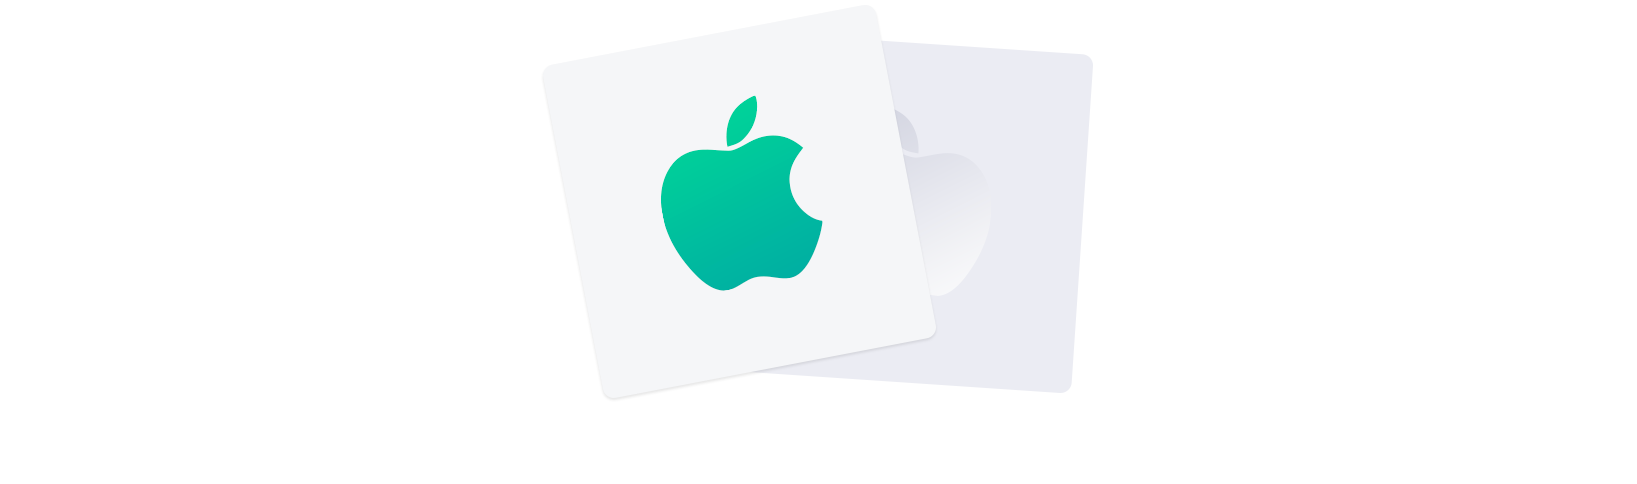 Helping Cable, Telco, and OTT Streaming Video Companies Deliver the Ultimate User Experience on Apple Devices